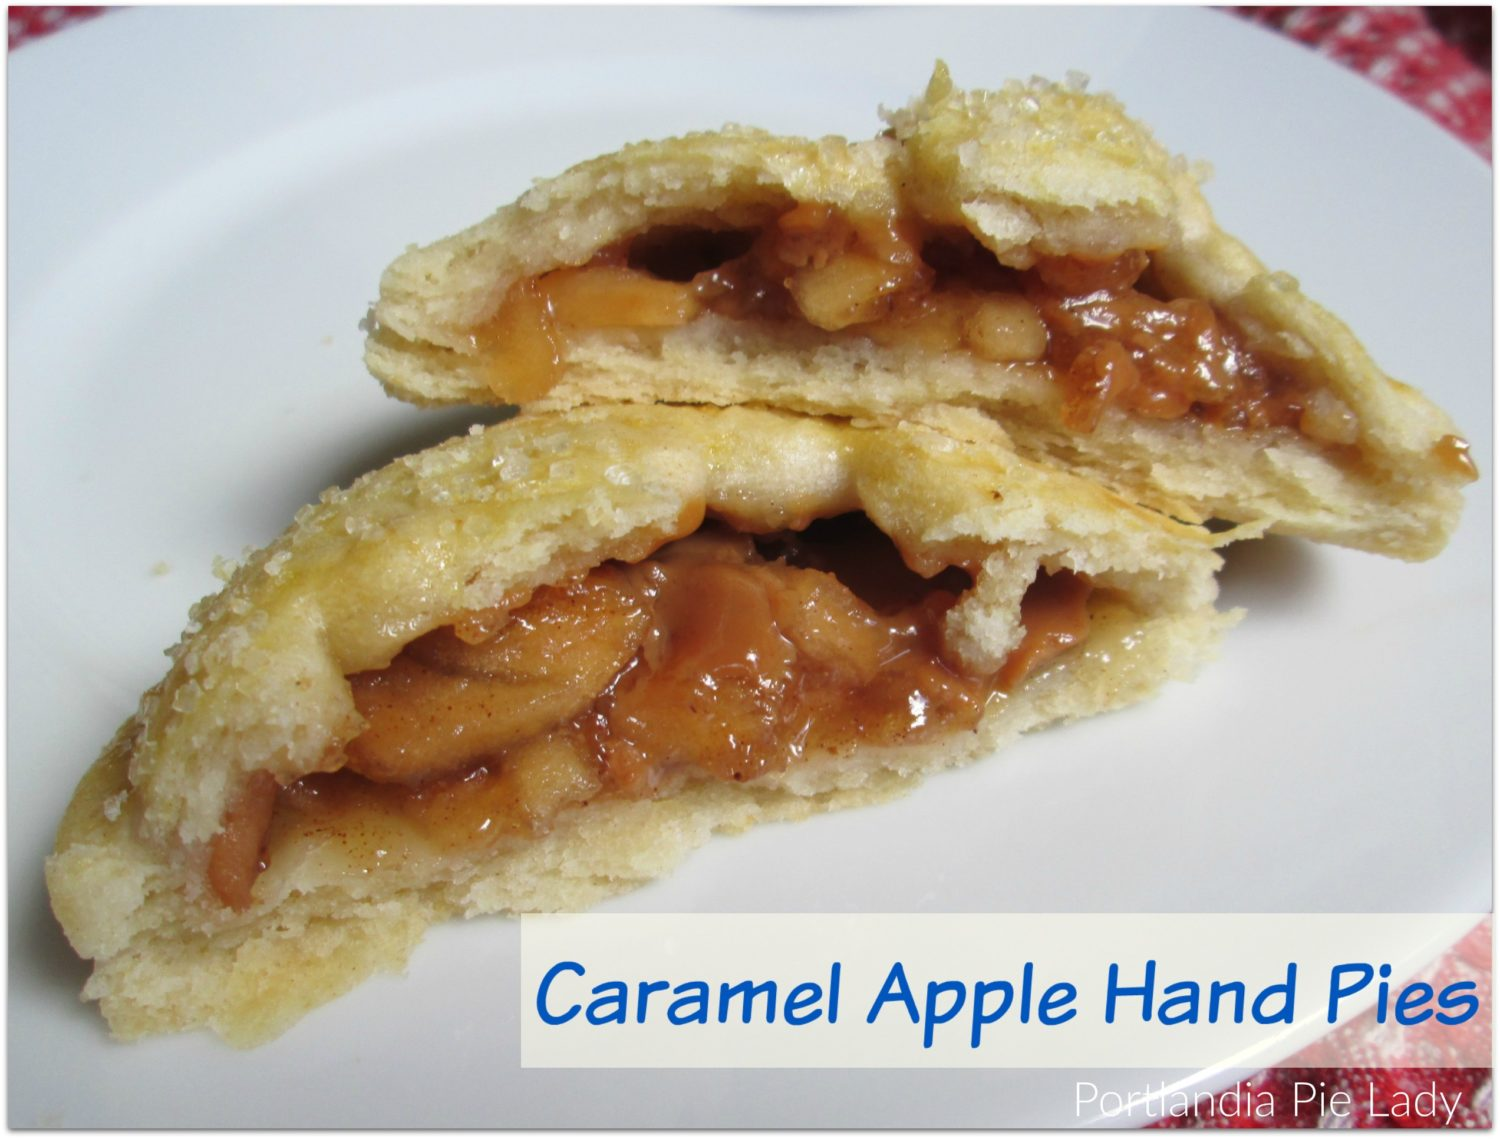 Caramel Apple Hand Pies a.k.a. Nature's Candy. Tart apple pie filling & melty caramel bits baked into a flaky tender crust hand-pie.